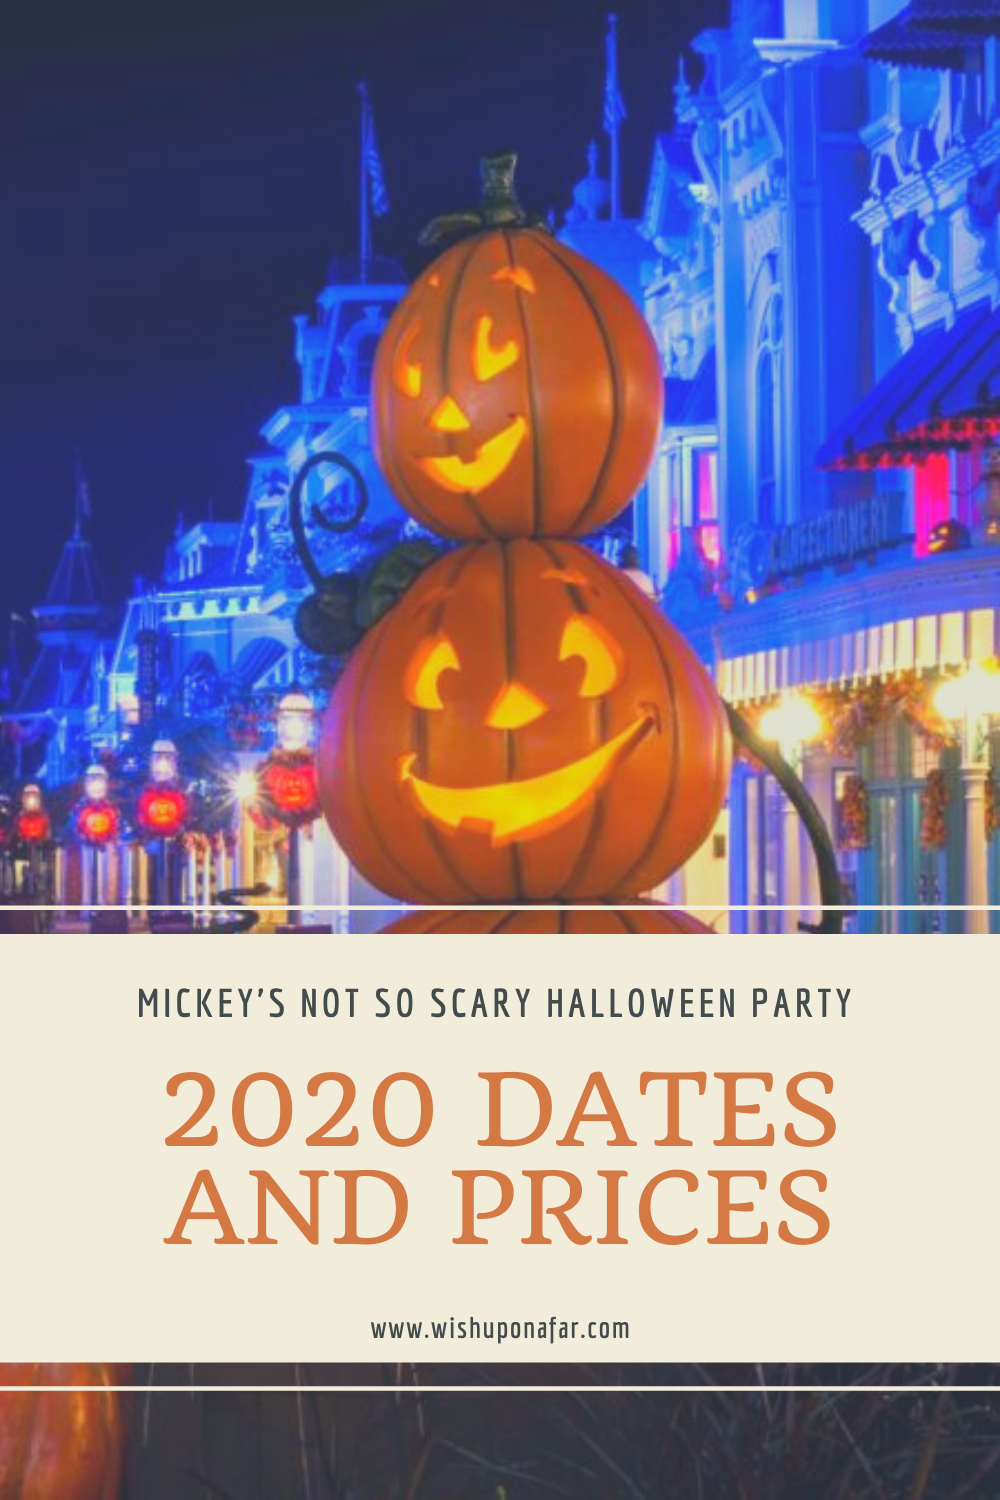 When Is Halloween 2020 Being Released 2020 Mickey's Not So Scary Halloween Party Dates and Prices have